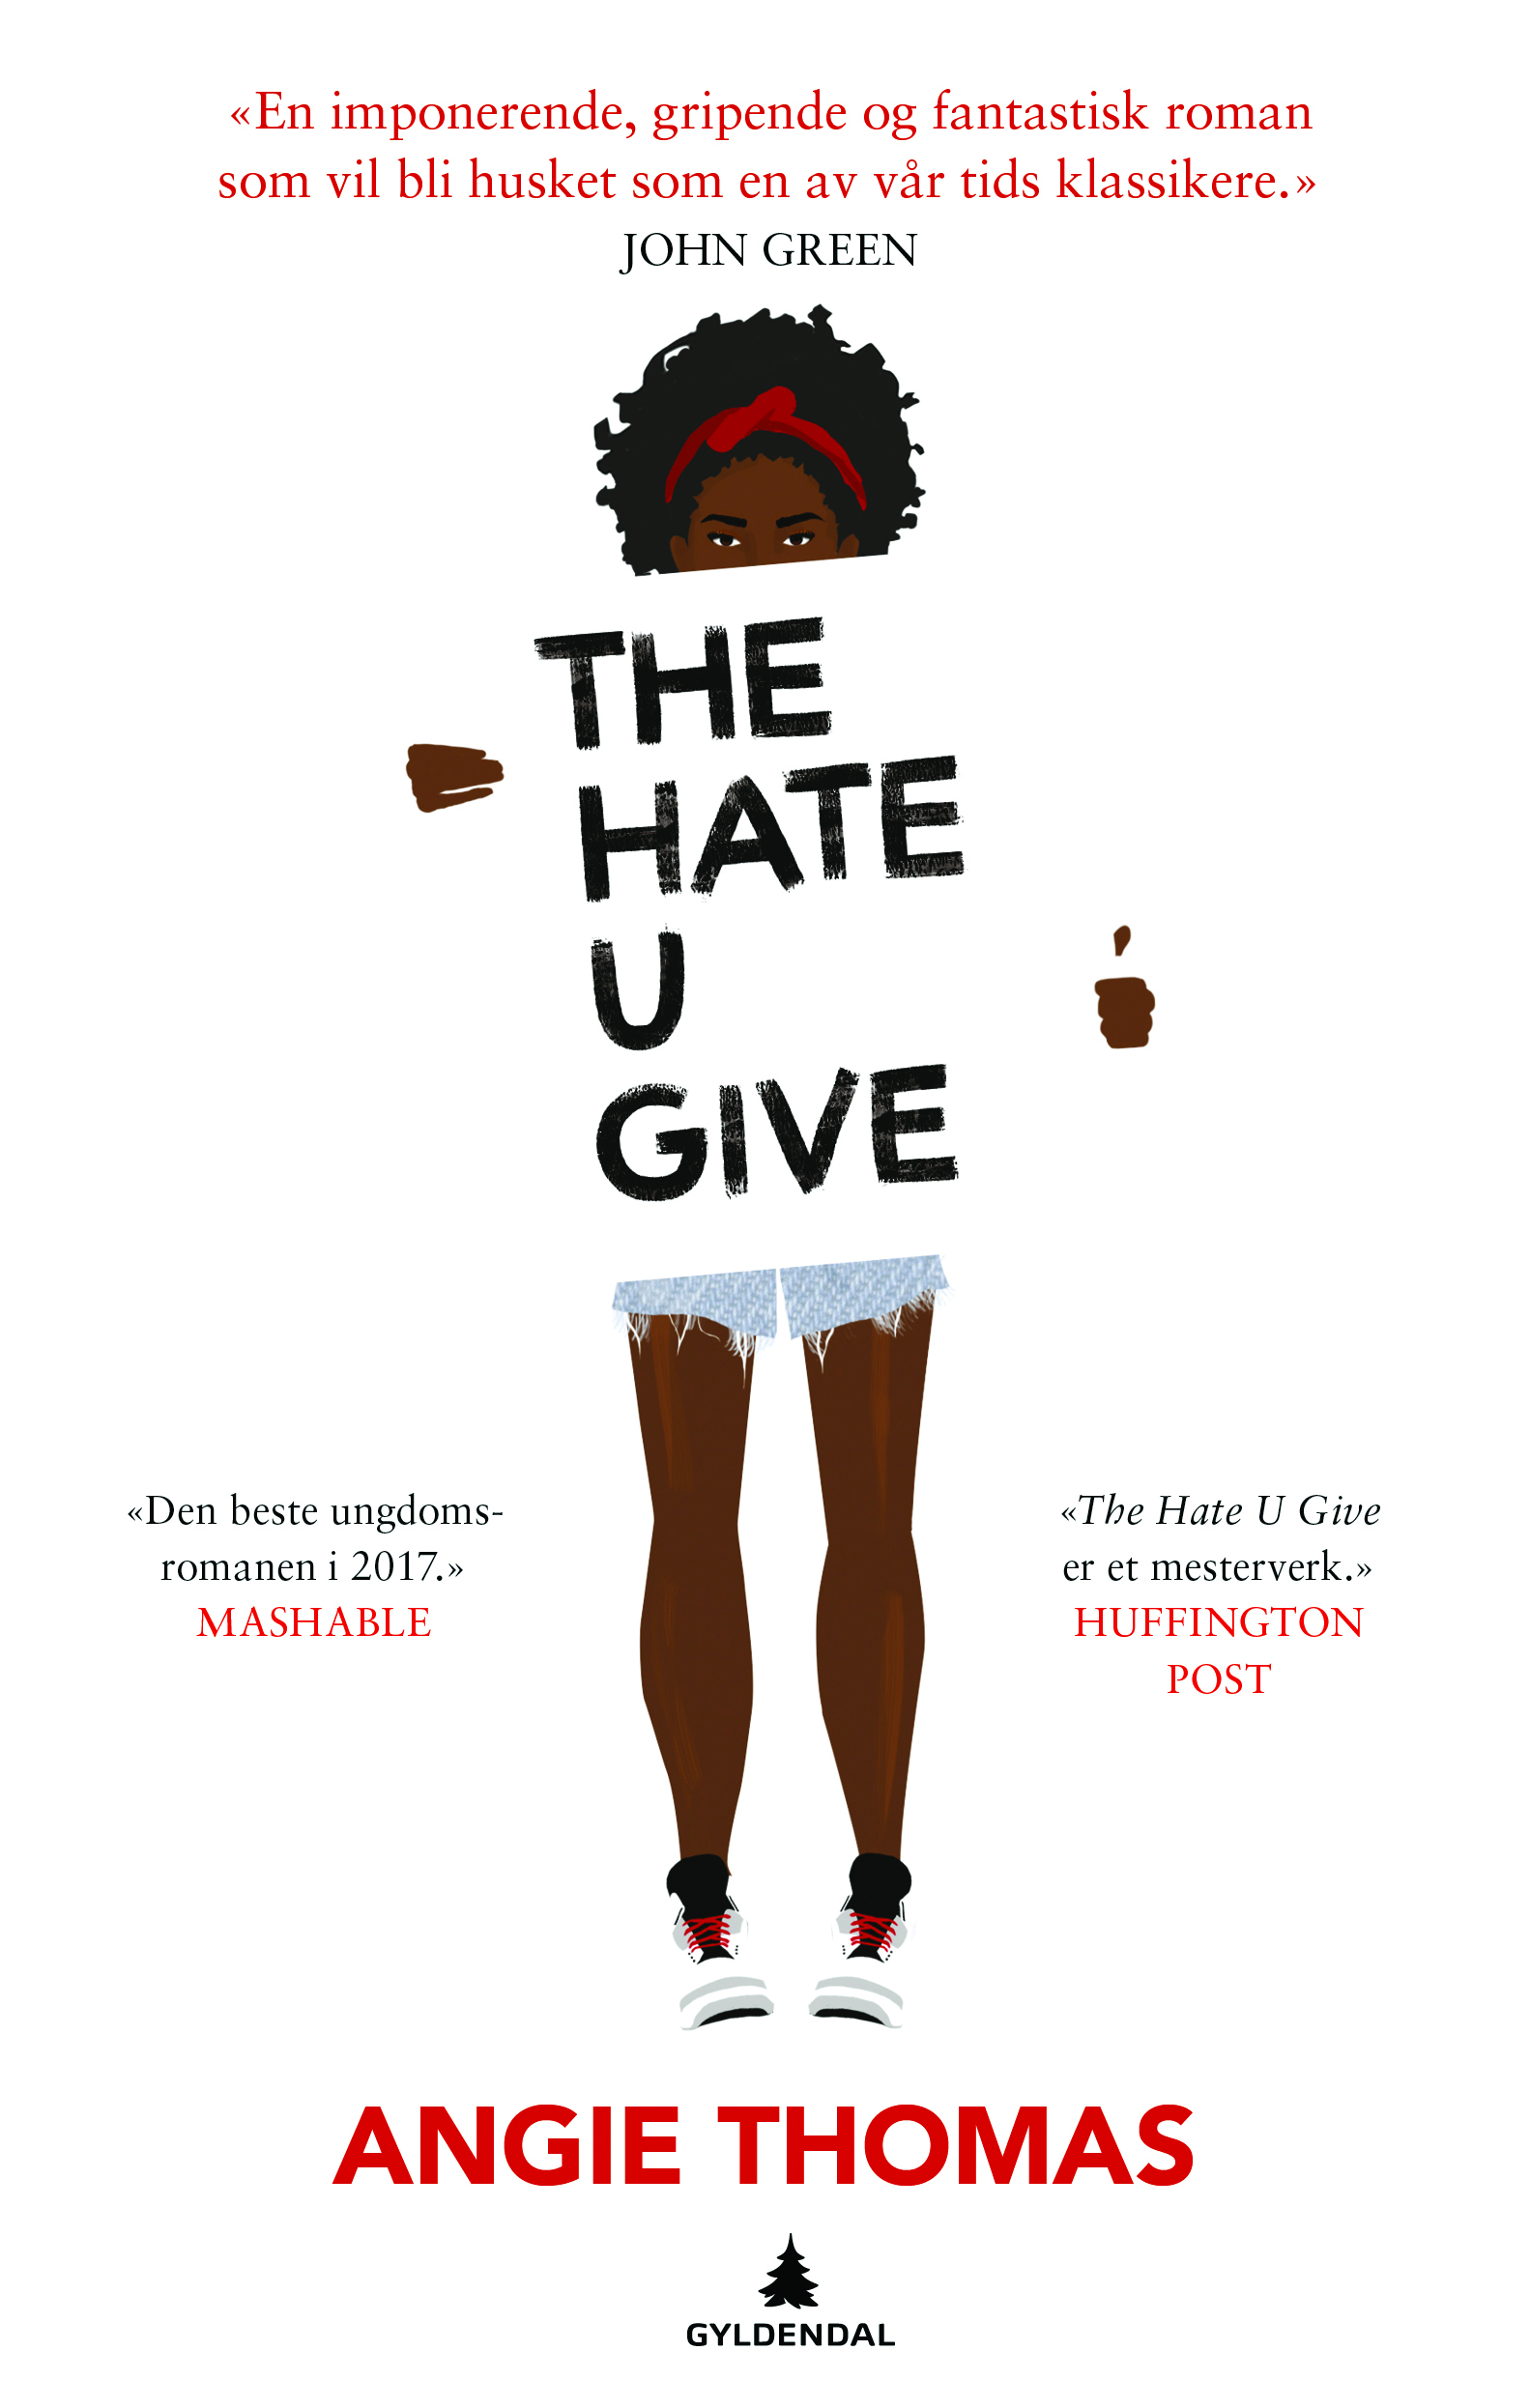 November 2018: The hate u give